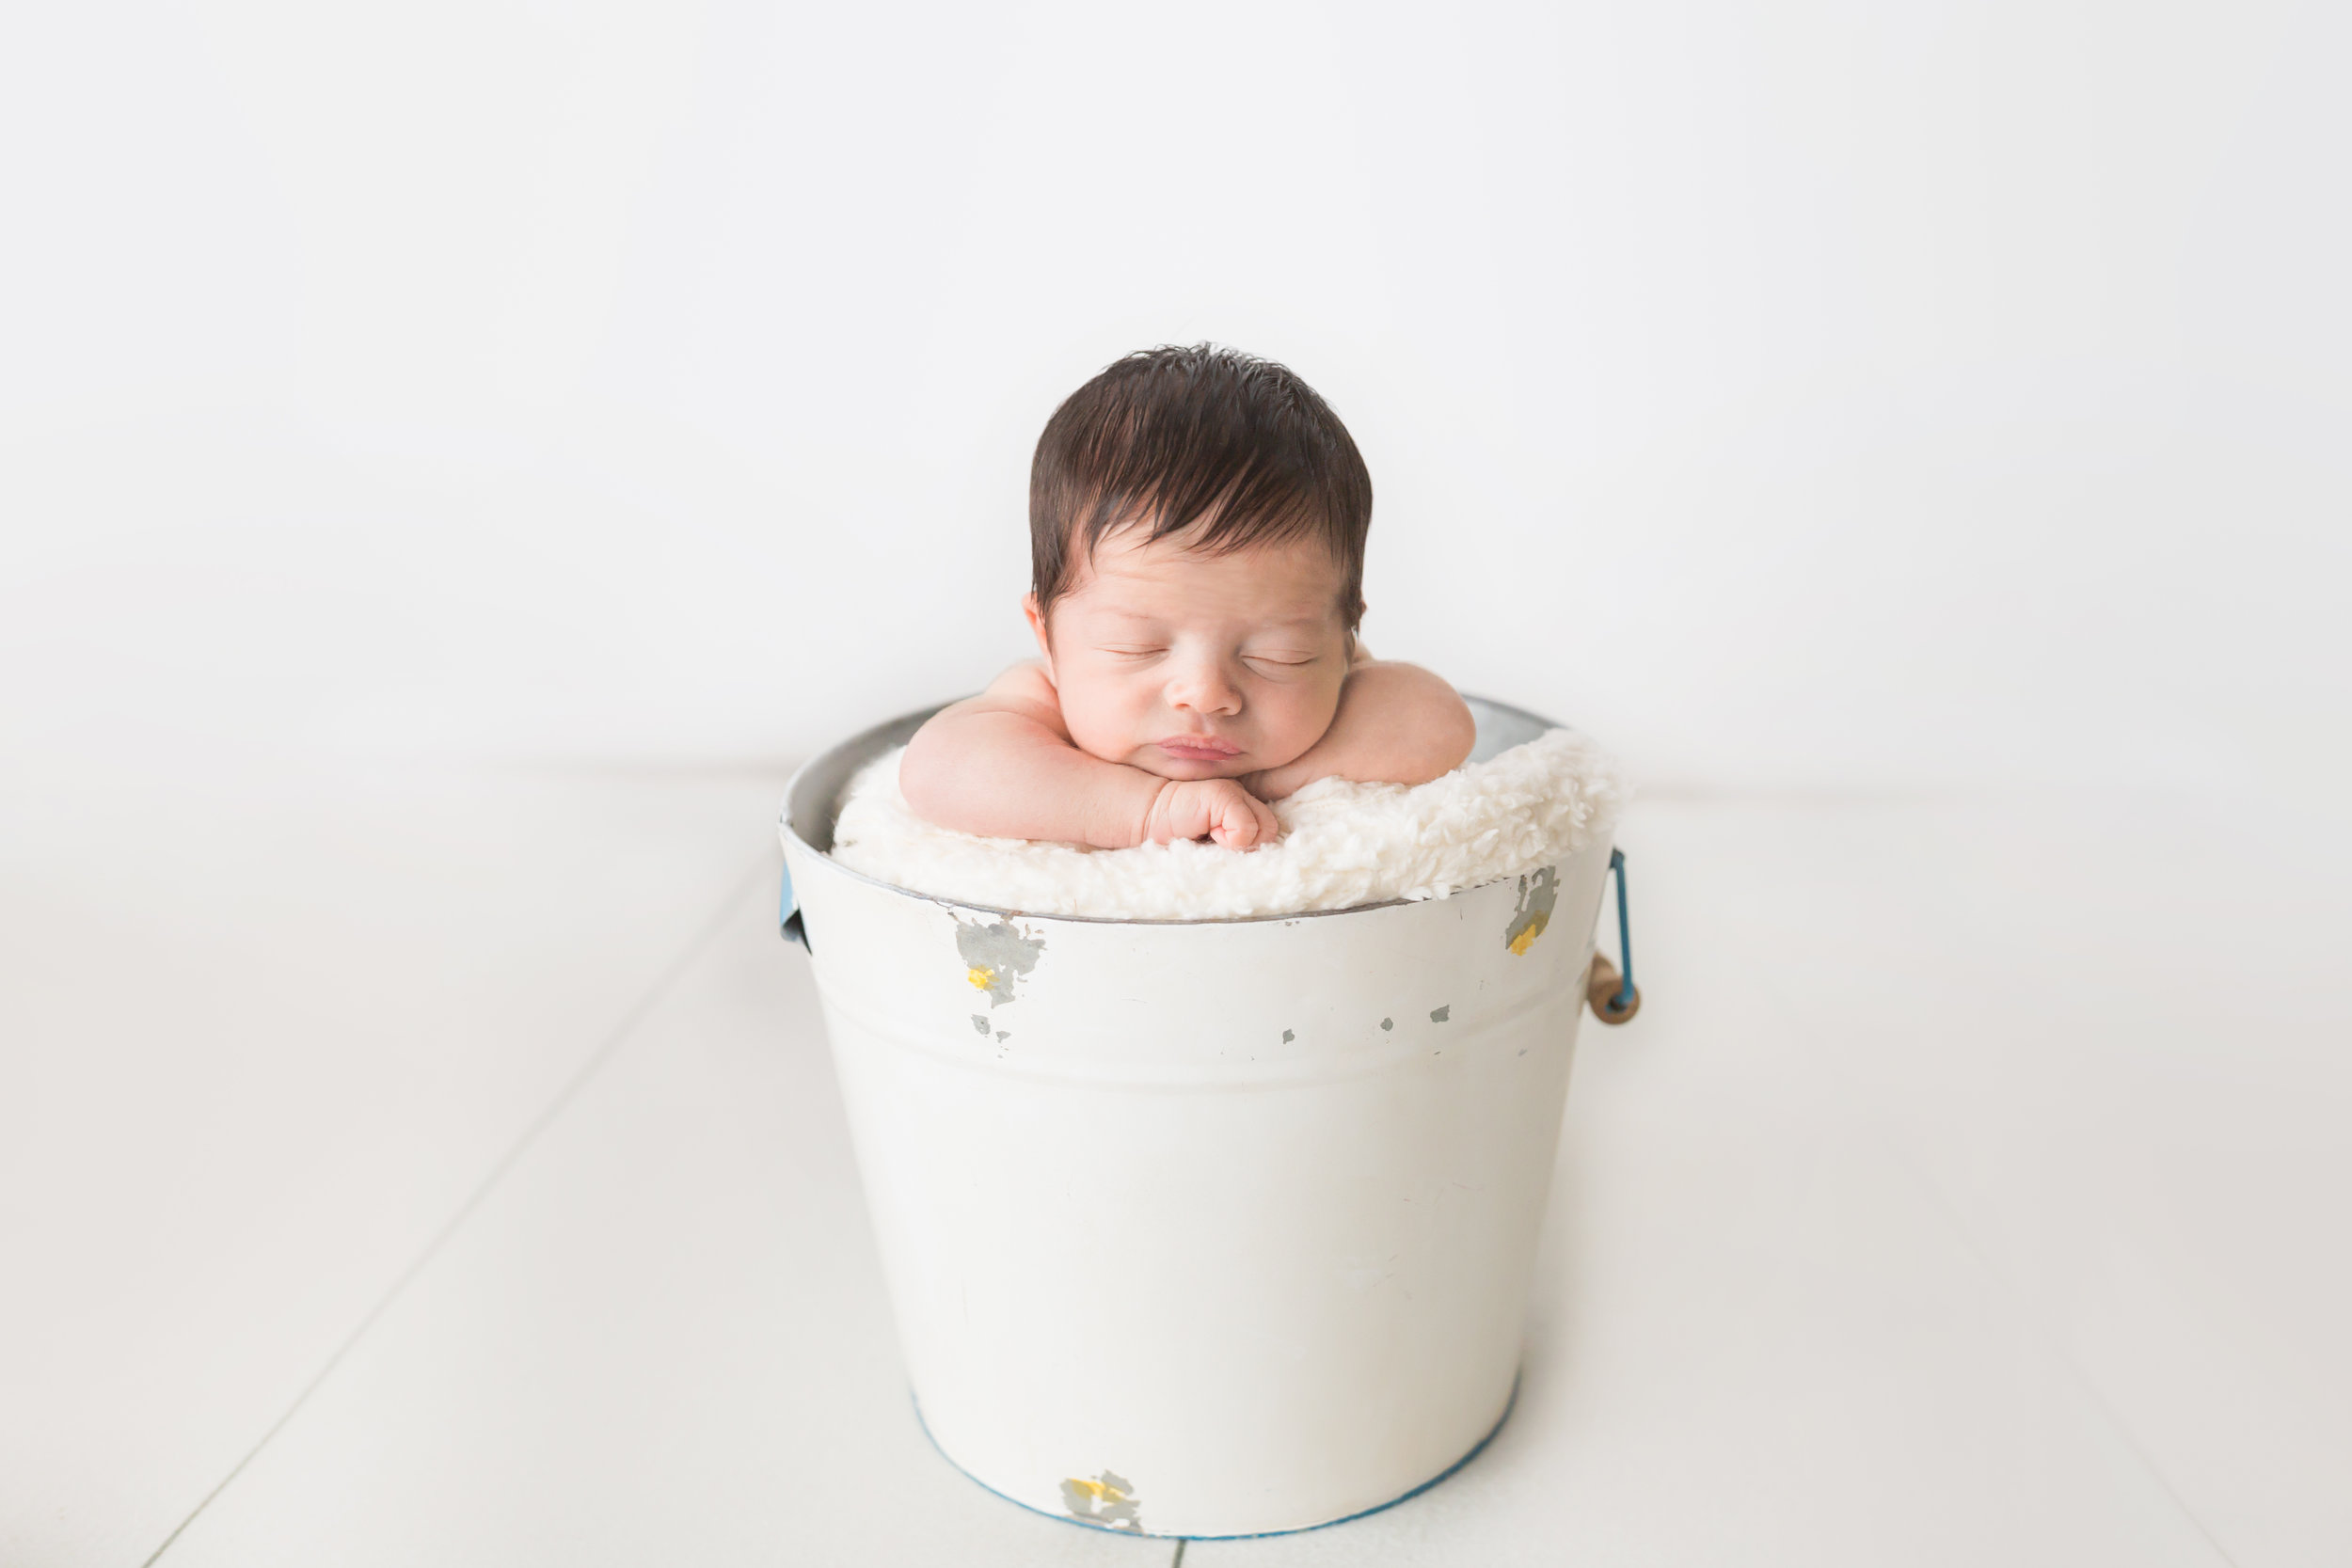 Levi s Newborn Session-Levi-0022.jpg